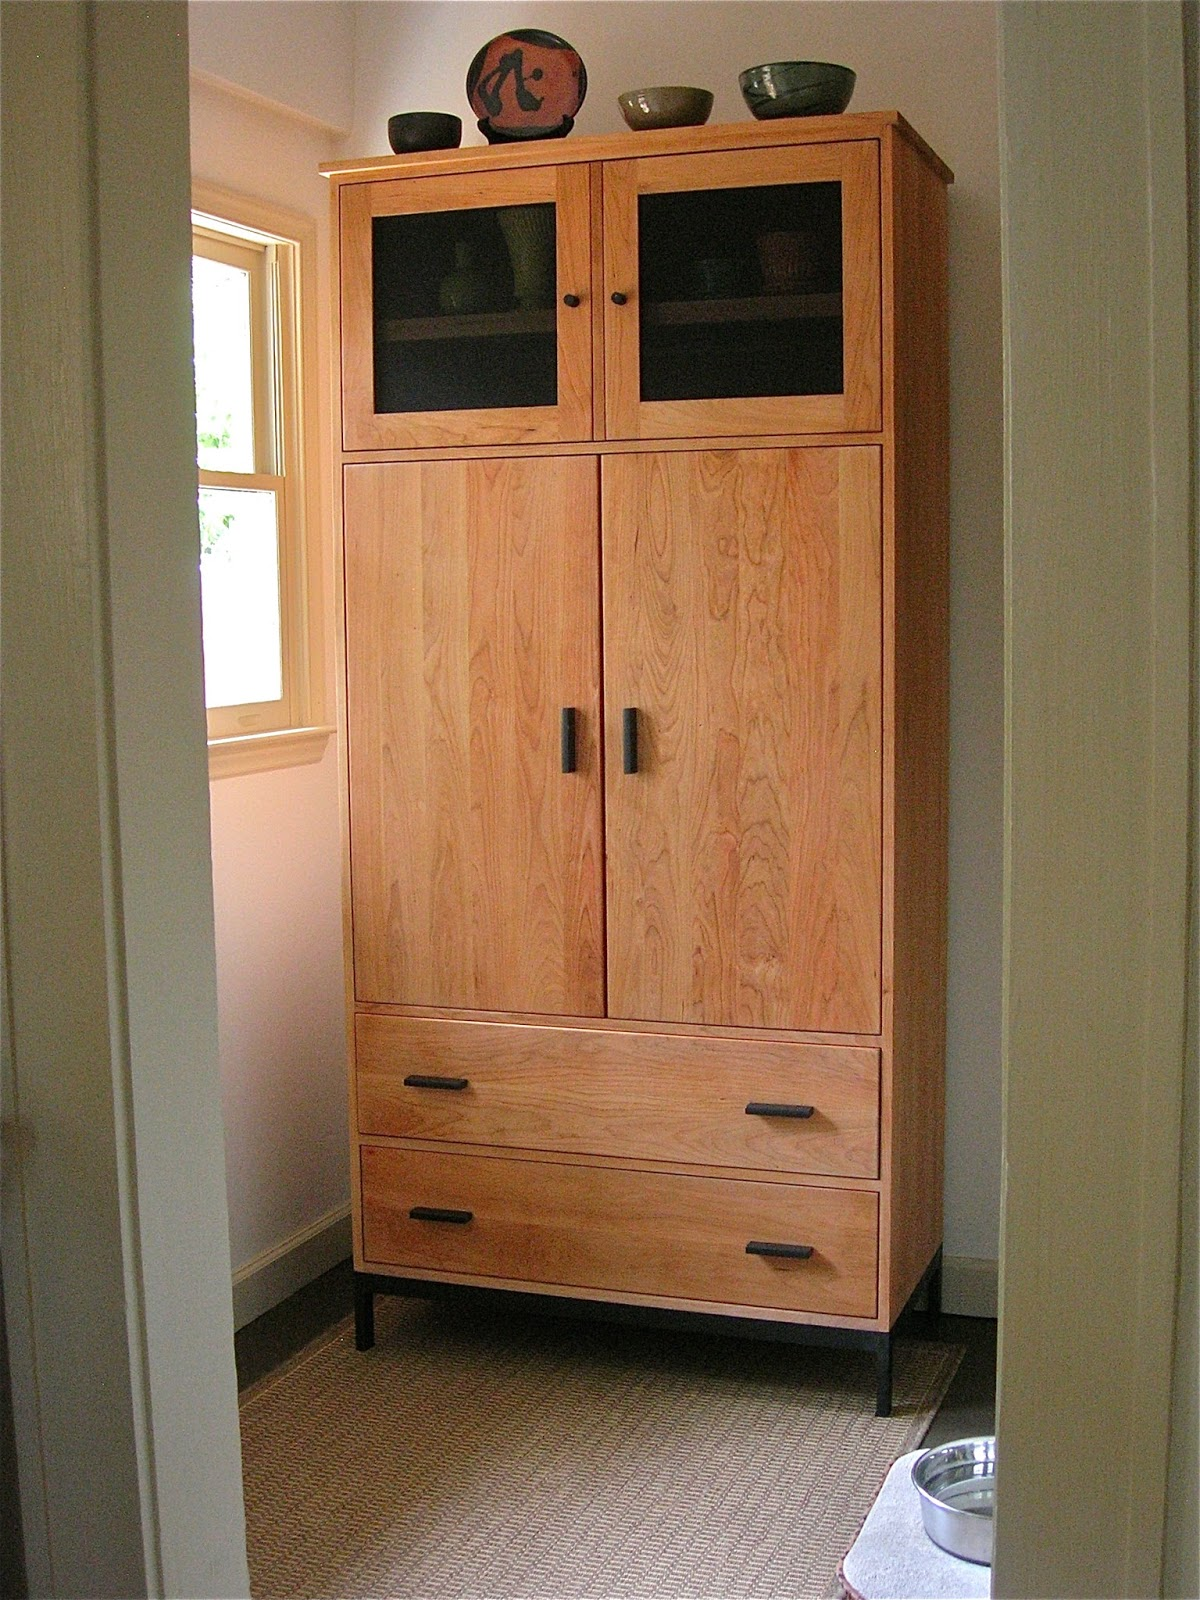 Mudroom Storage Cabinets : My little bungalow mudroom renovation storage cabinet